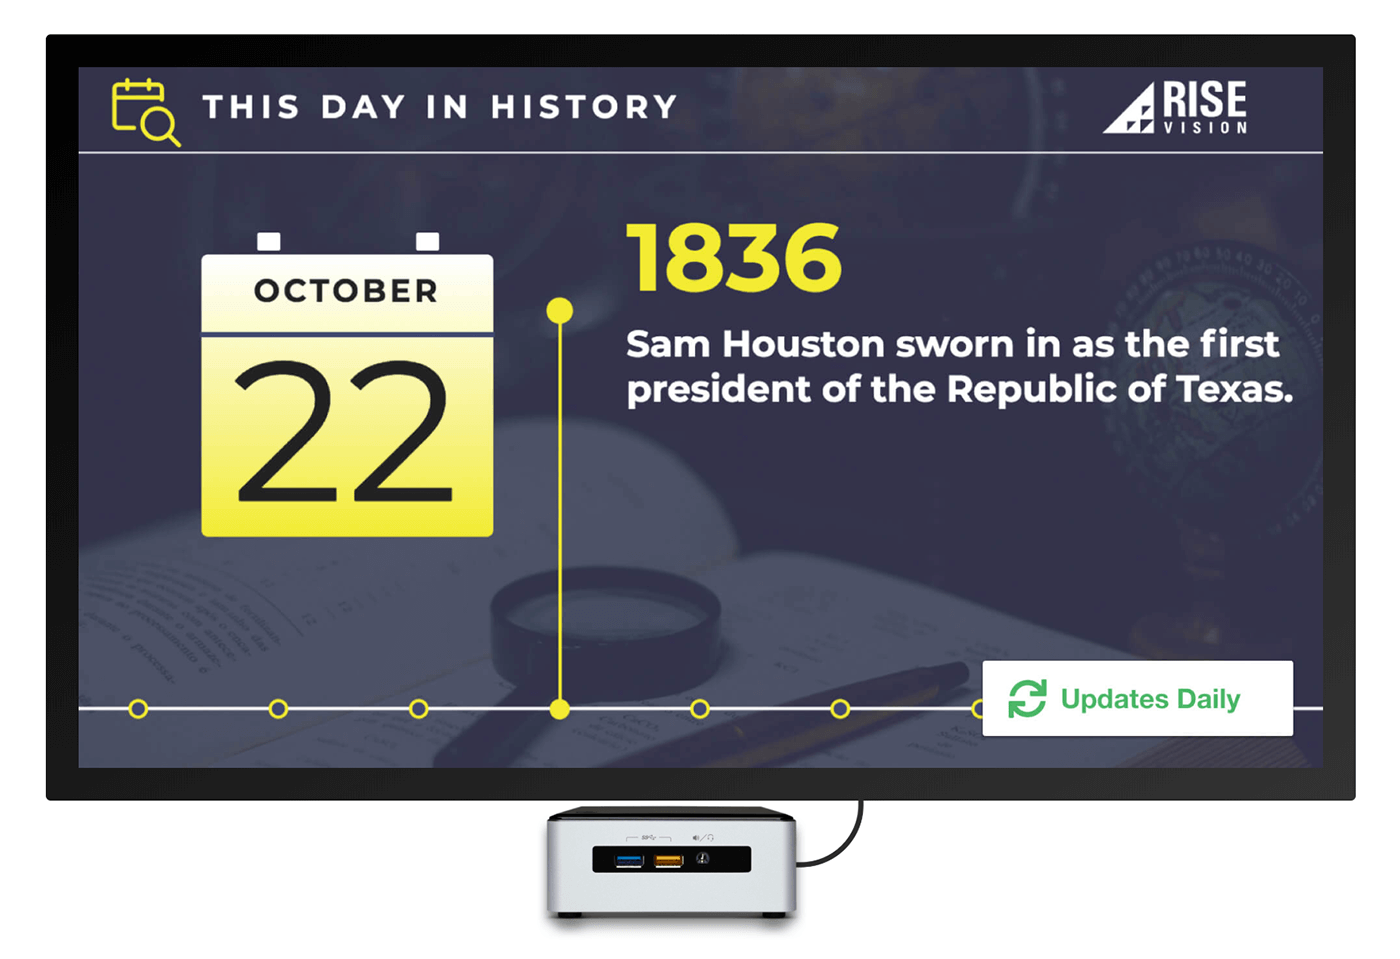 this day in history digital signage template